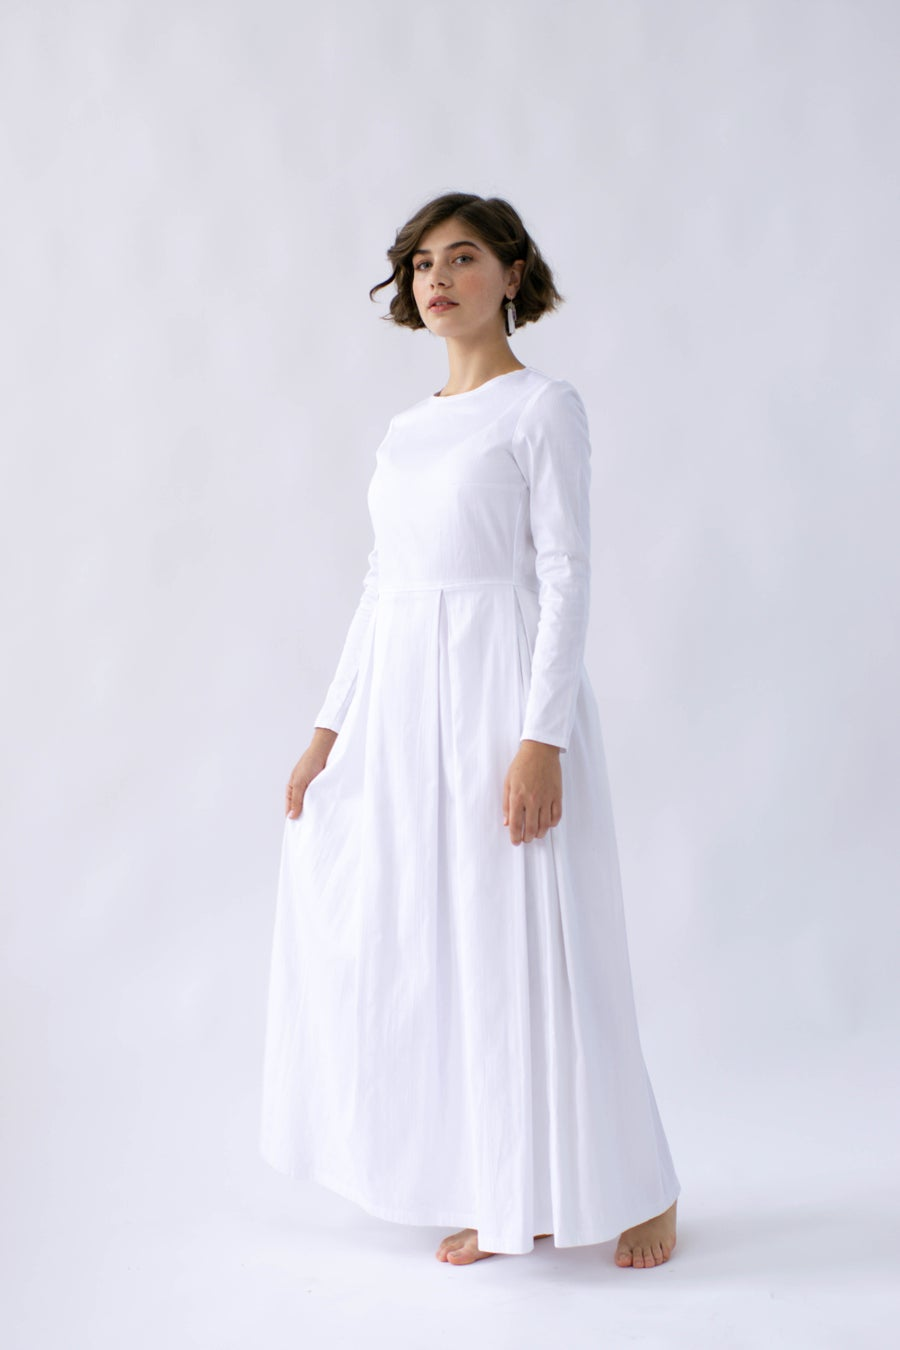 Image of Iris dress